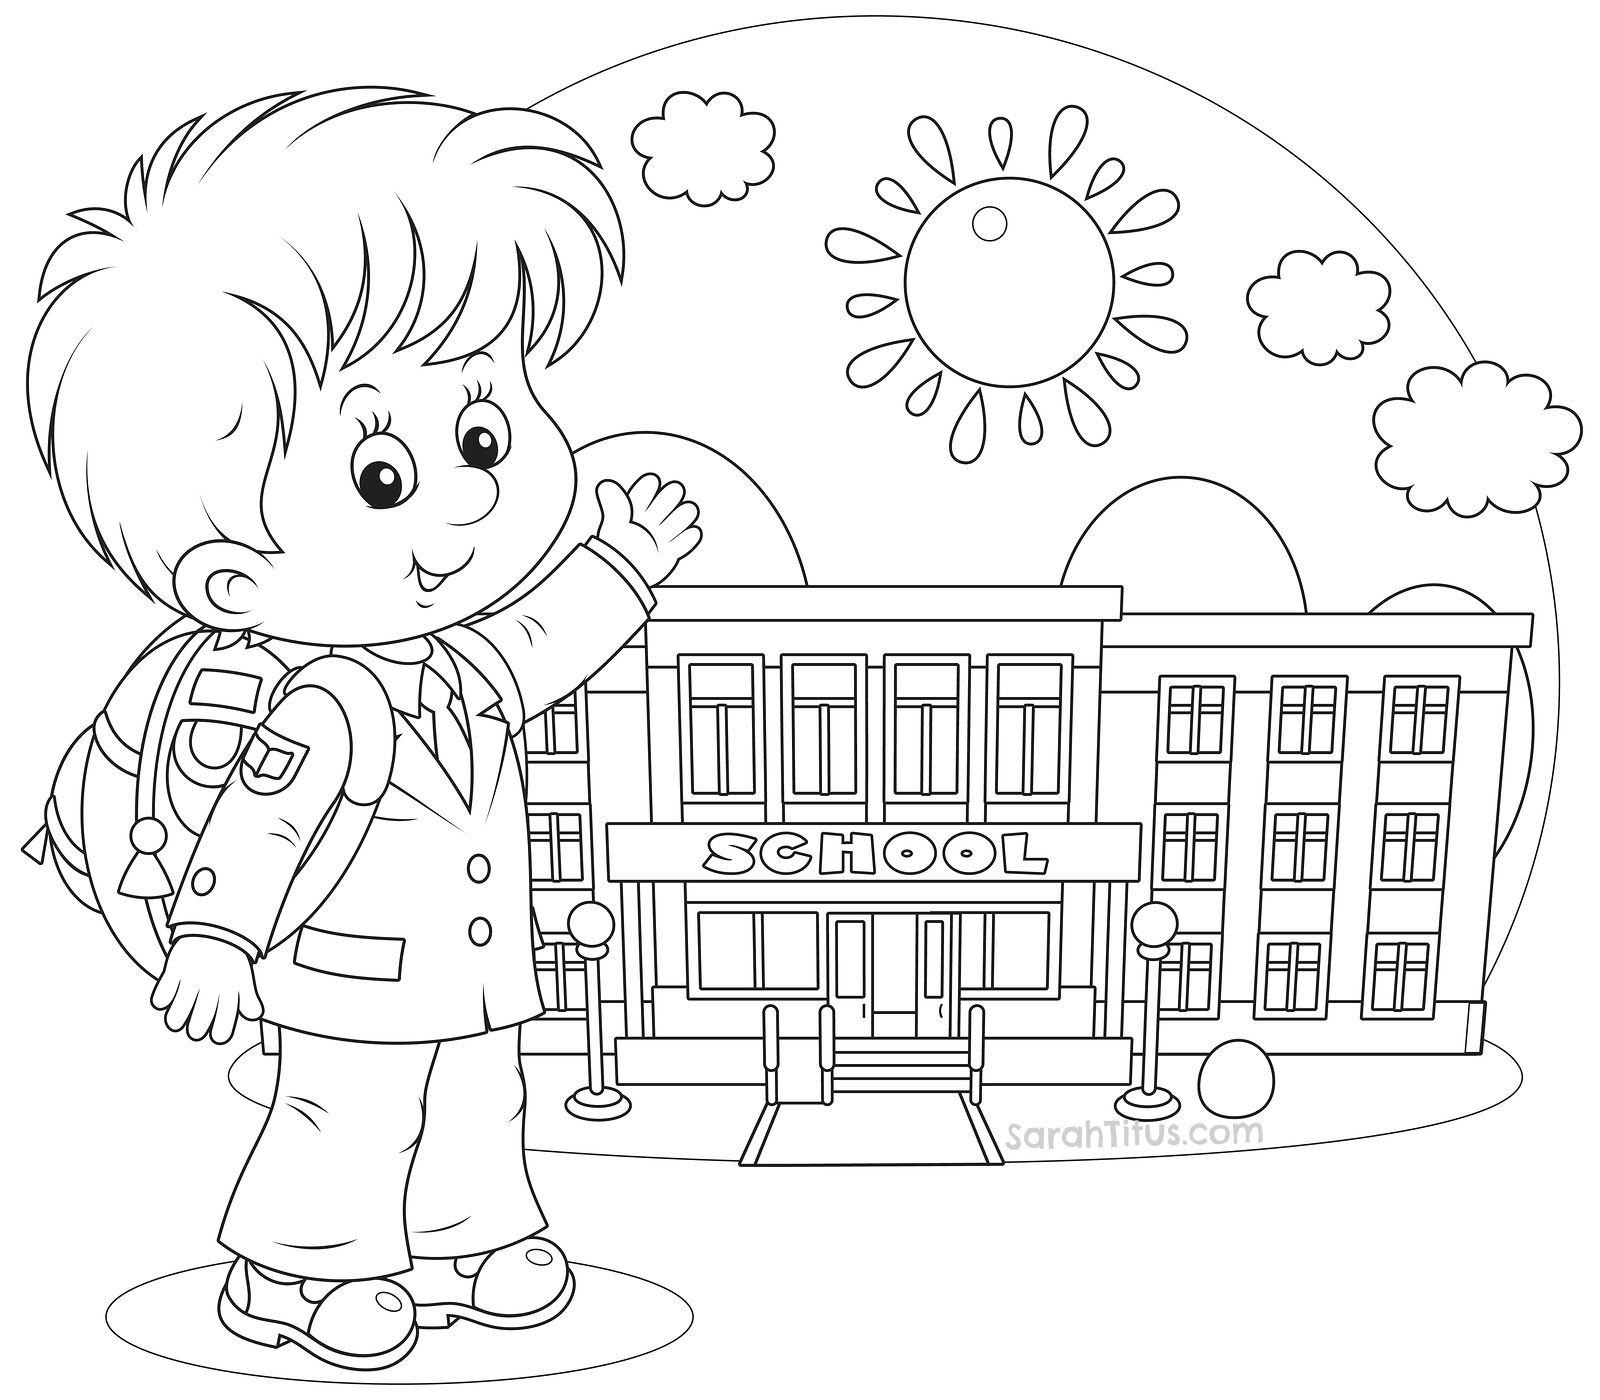 Free coloring pages for first grade - Back To School Coloring Pages Sarahtitus Com